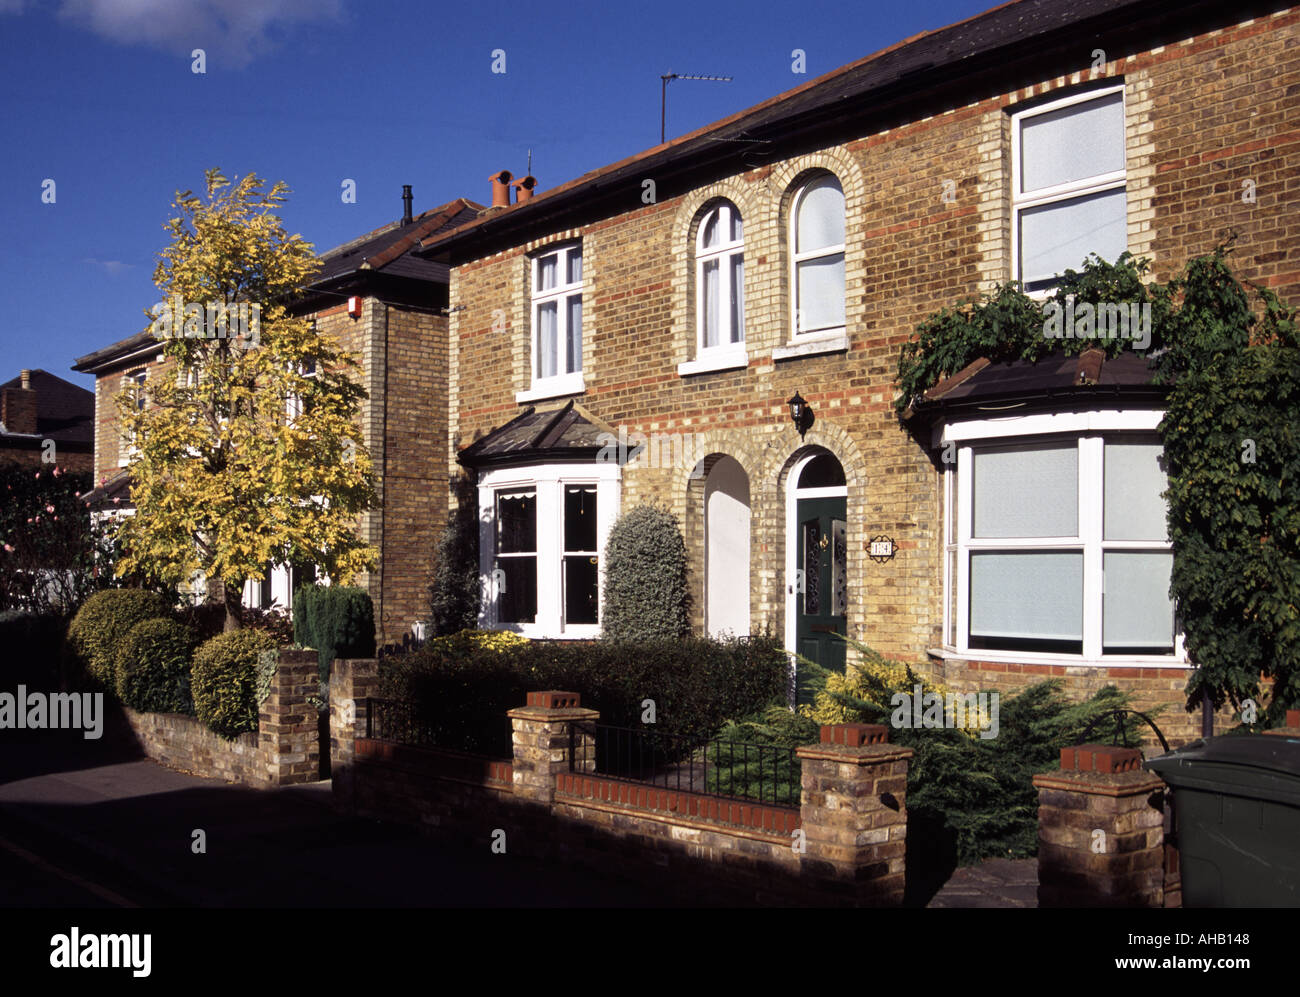 Housing Victorian semi detatched brick house with PVC windows - Stock Image